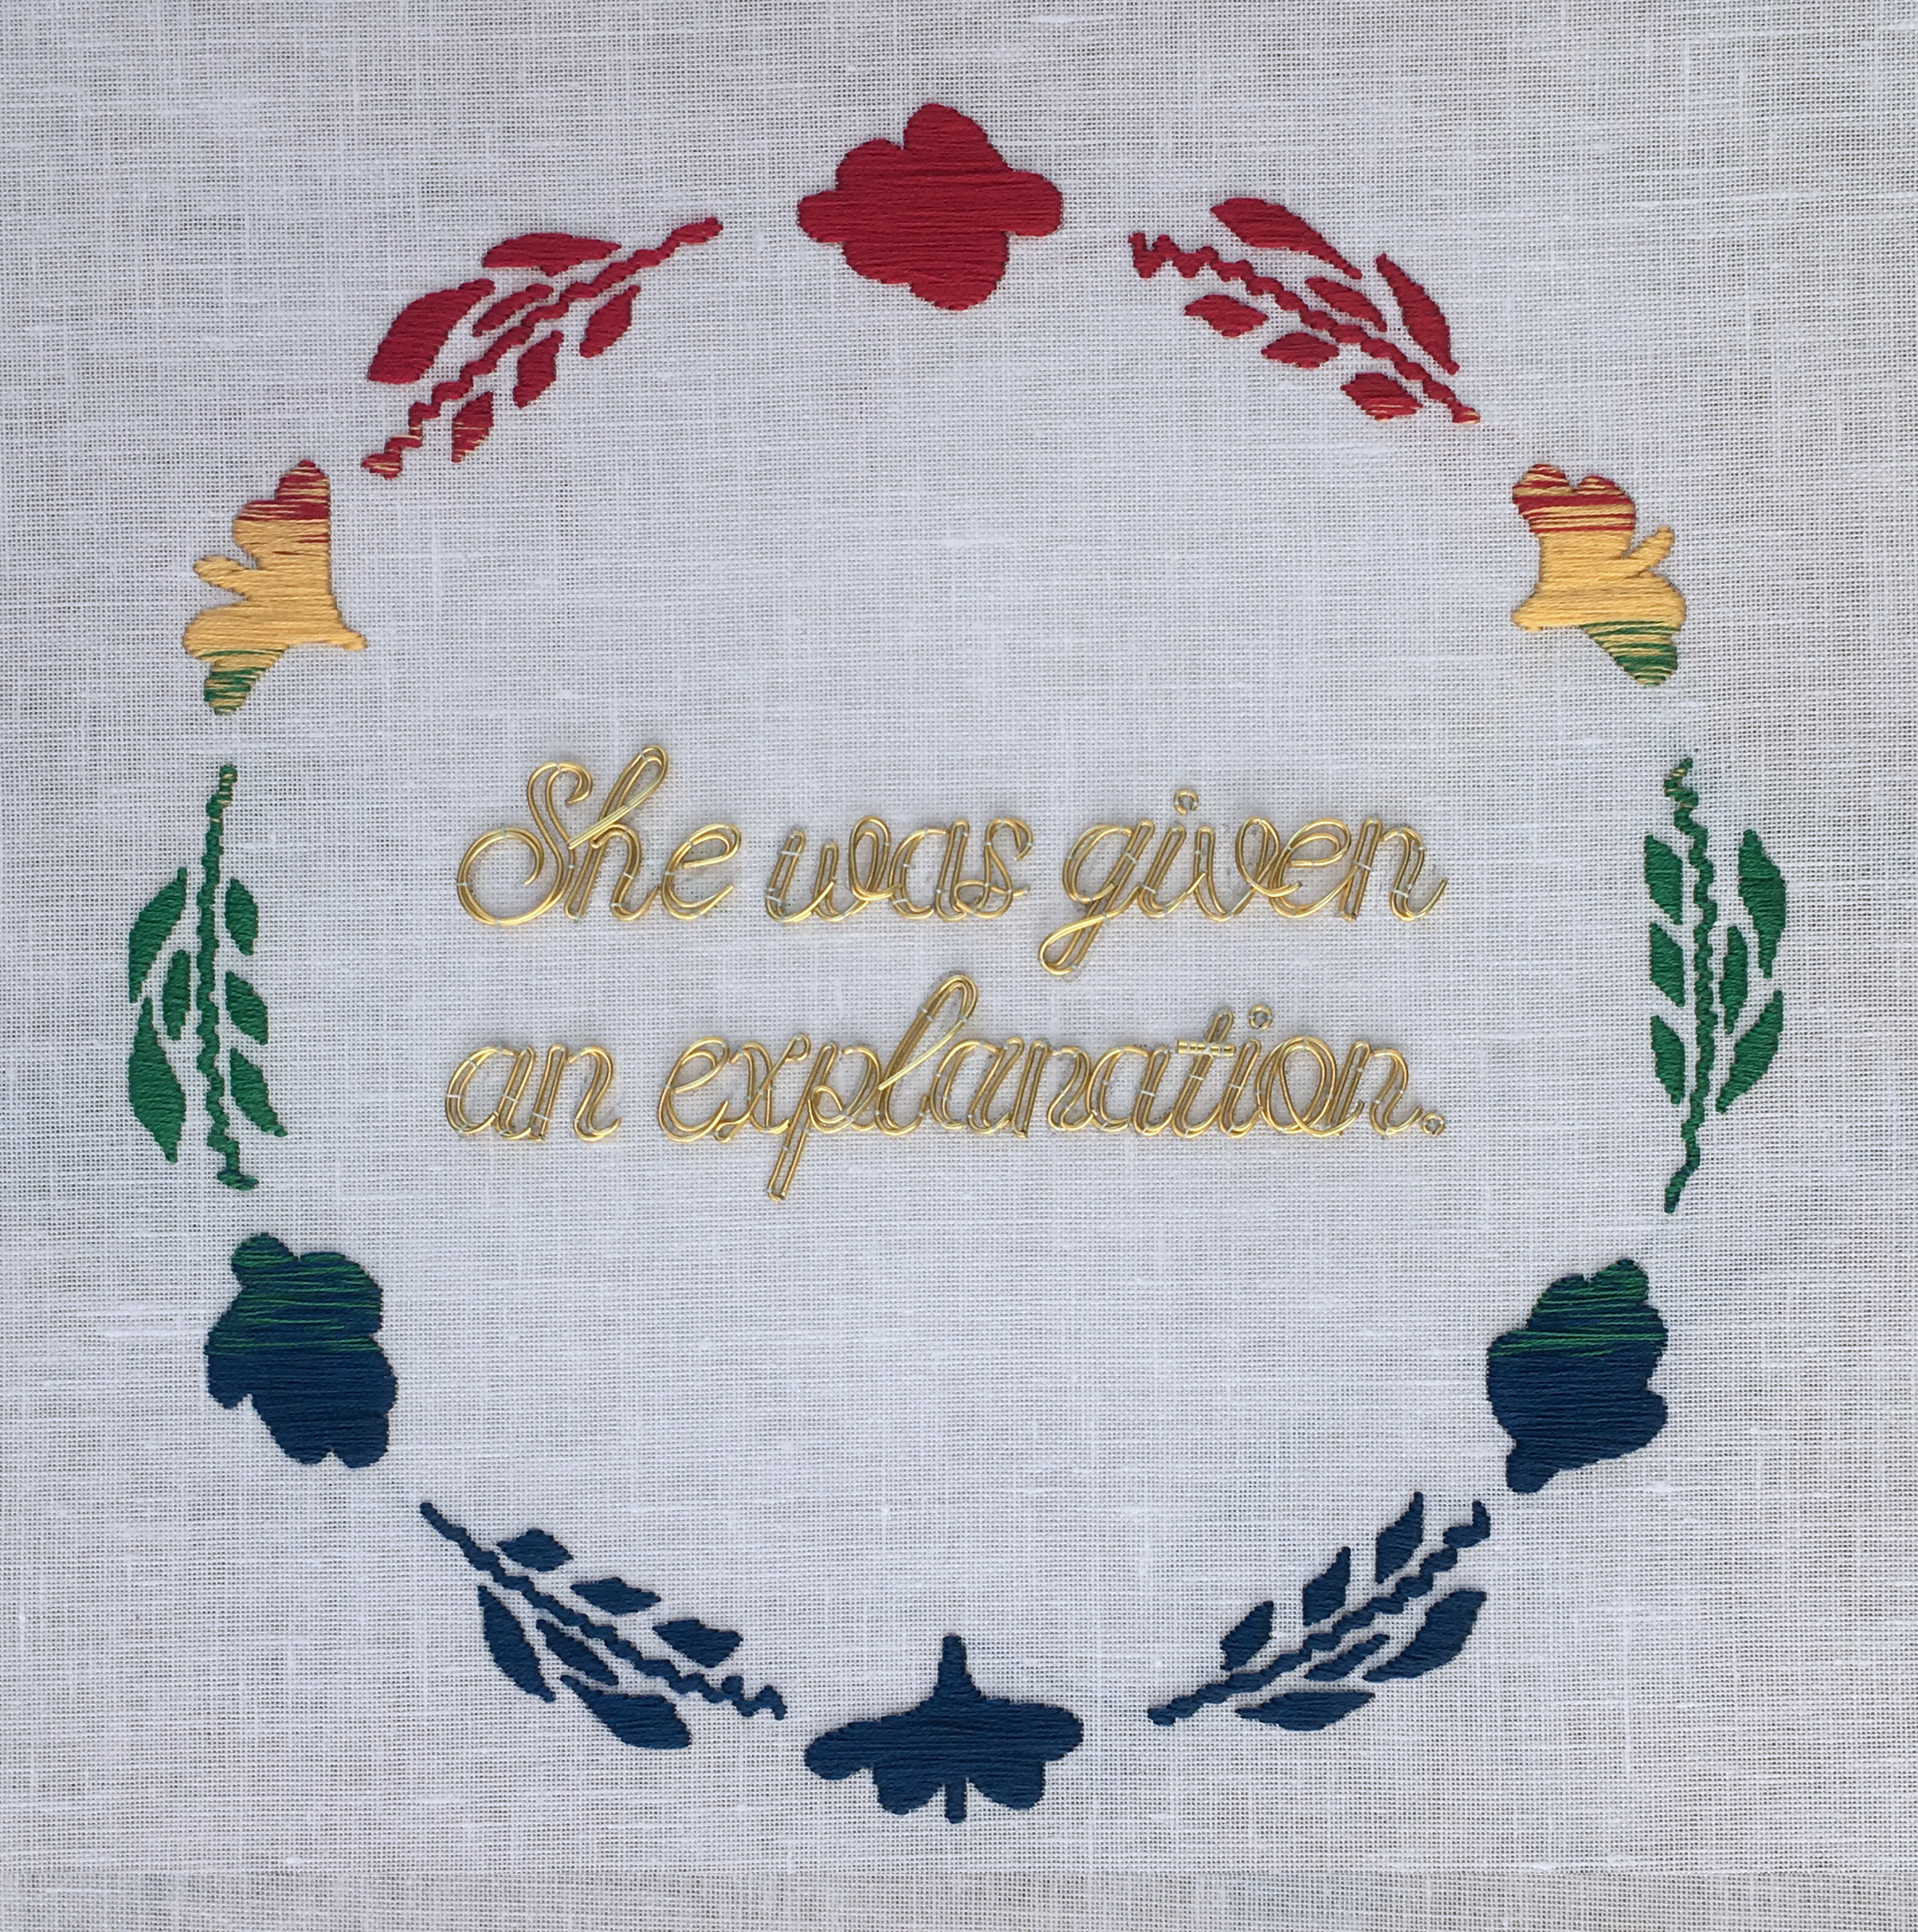 Joyce Overheul | She was given an explanation, Para ti, Maria Hernandez, 2018